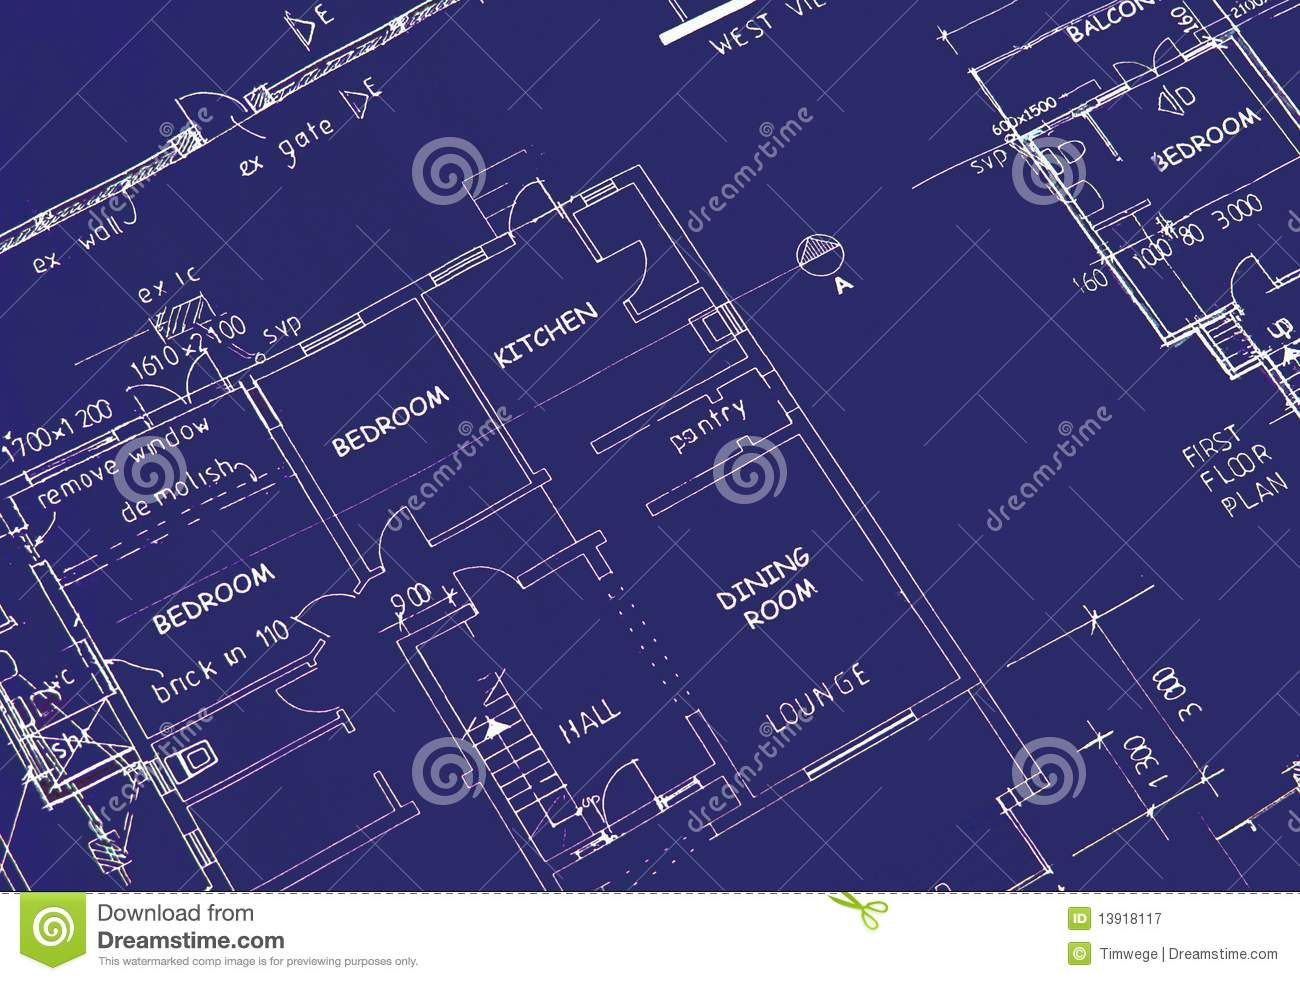 Blueprint of building plans royalty free stock photography image